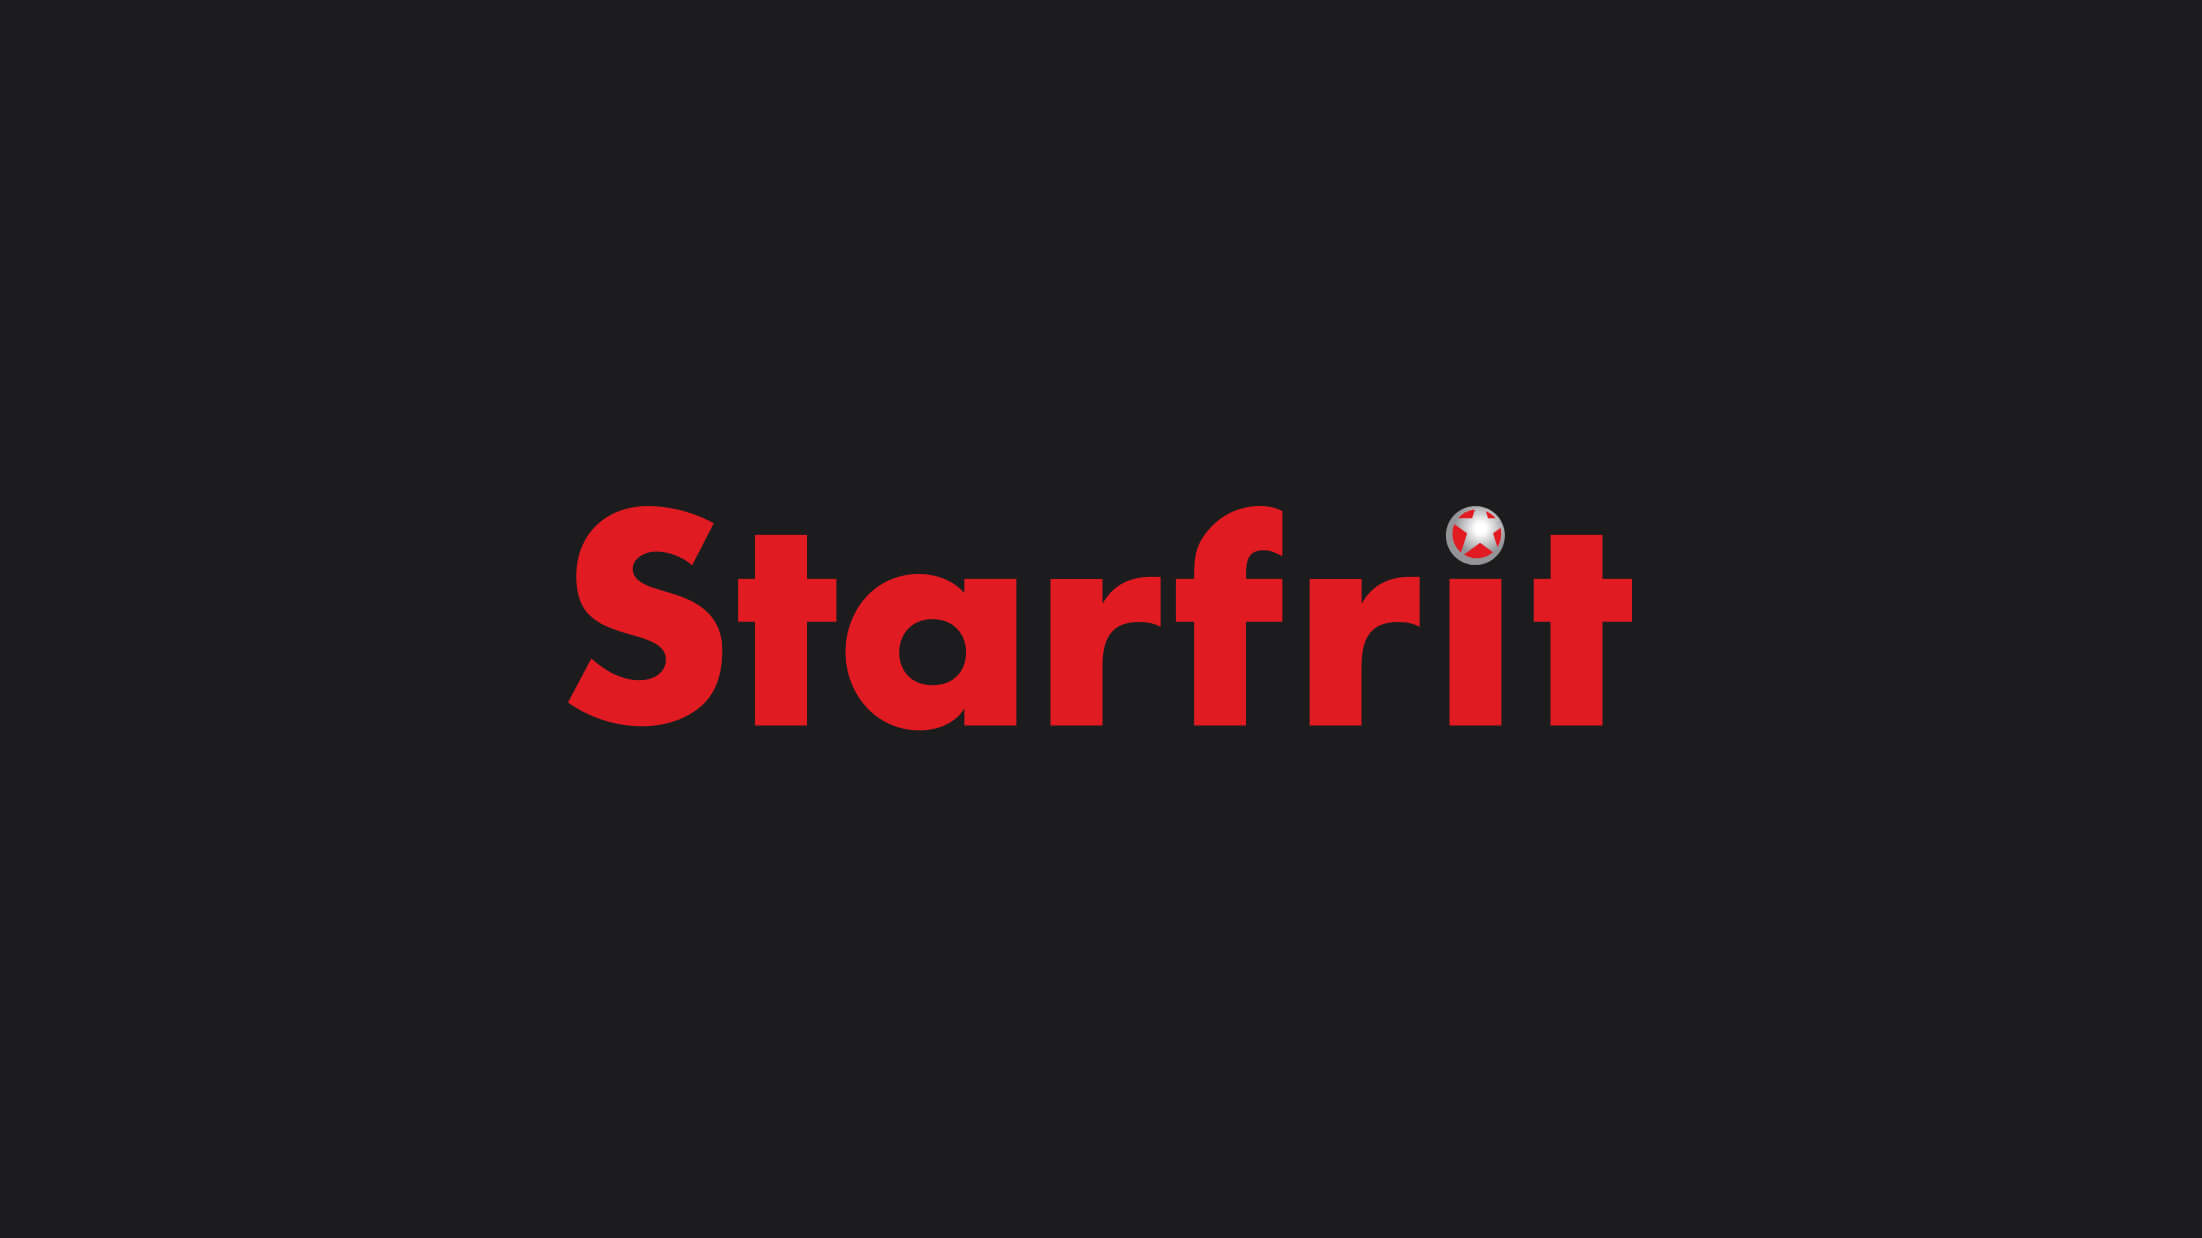 The Starfrit Electric Rotato Express